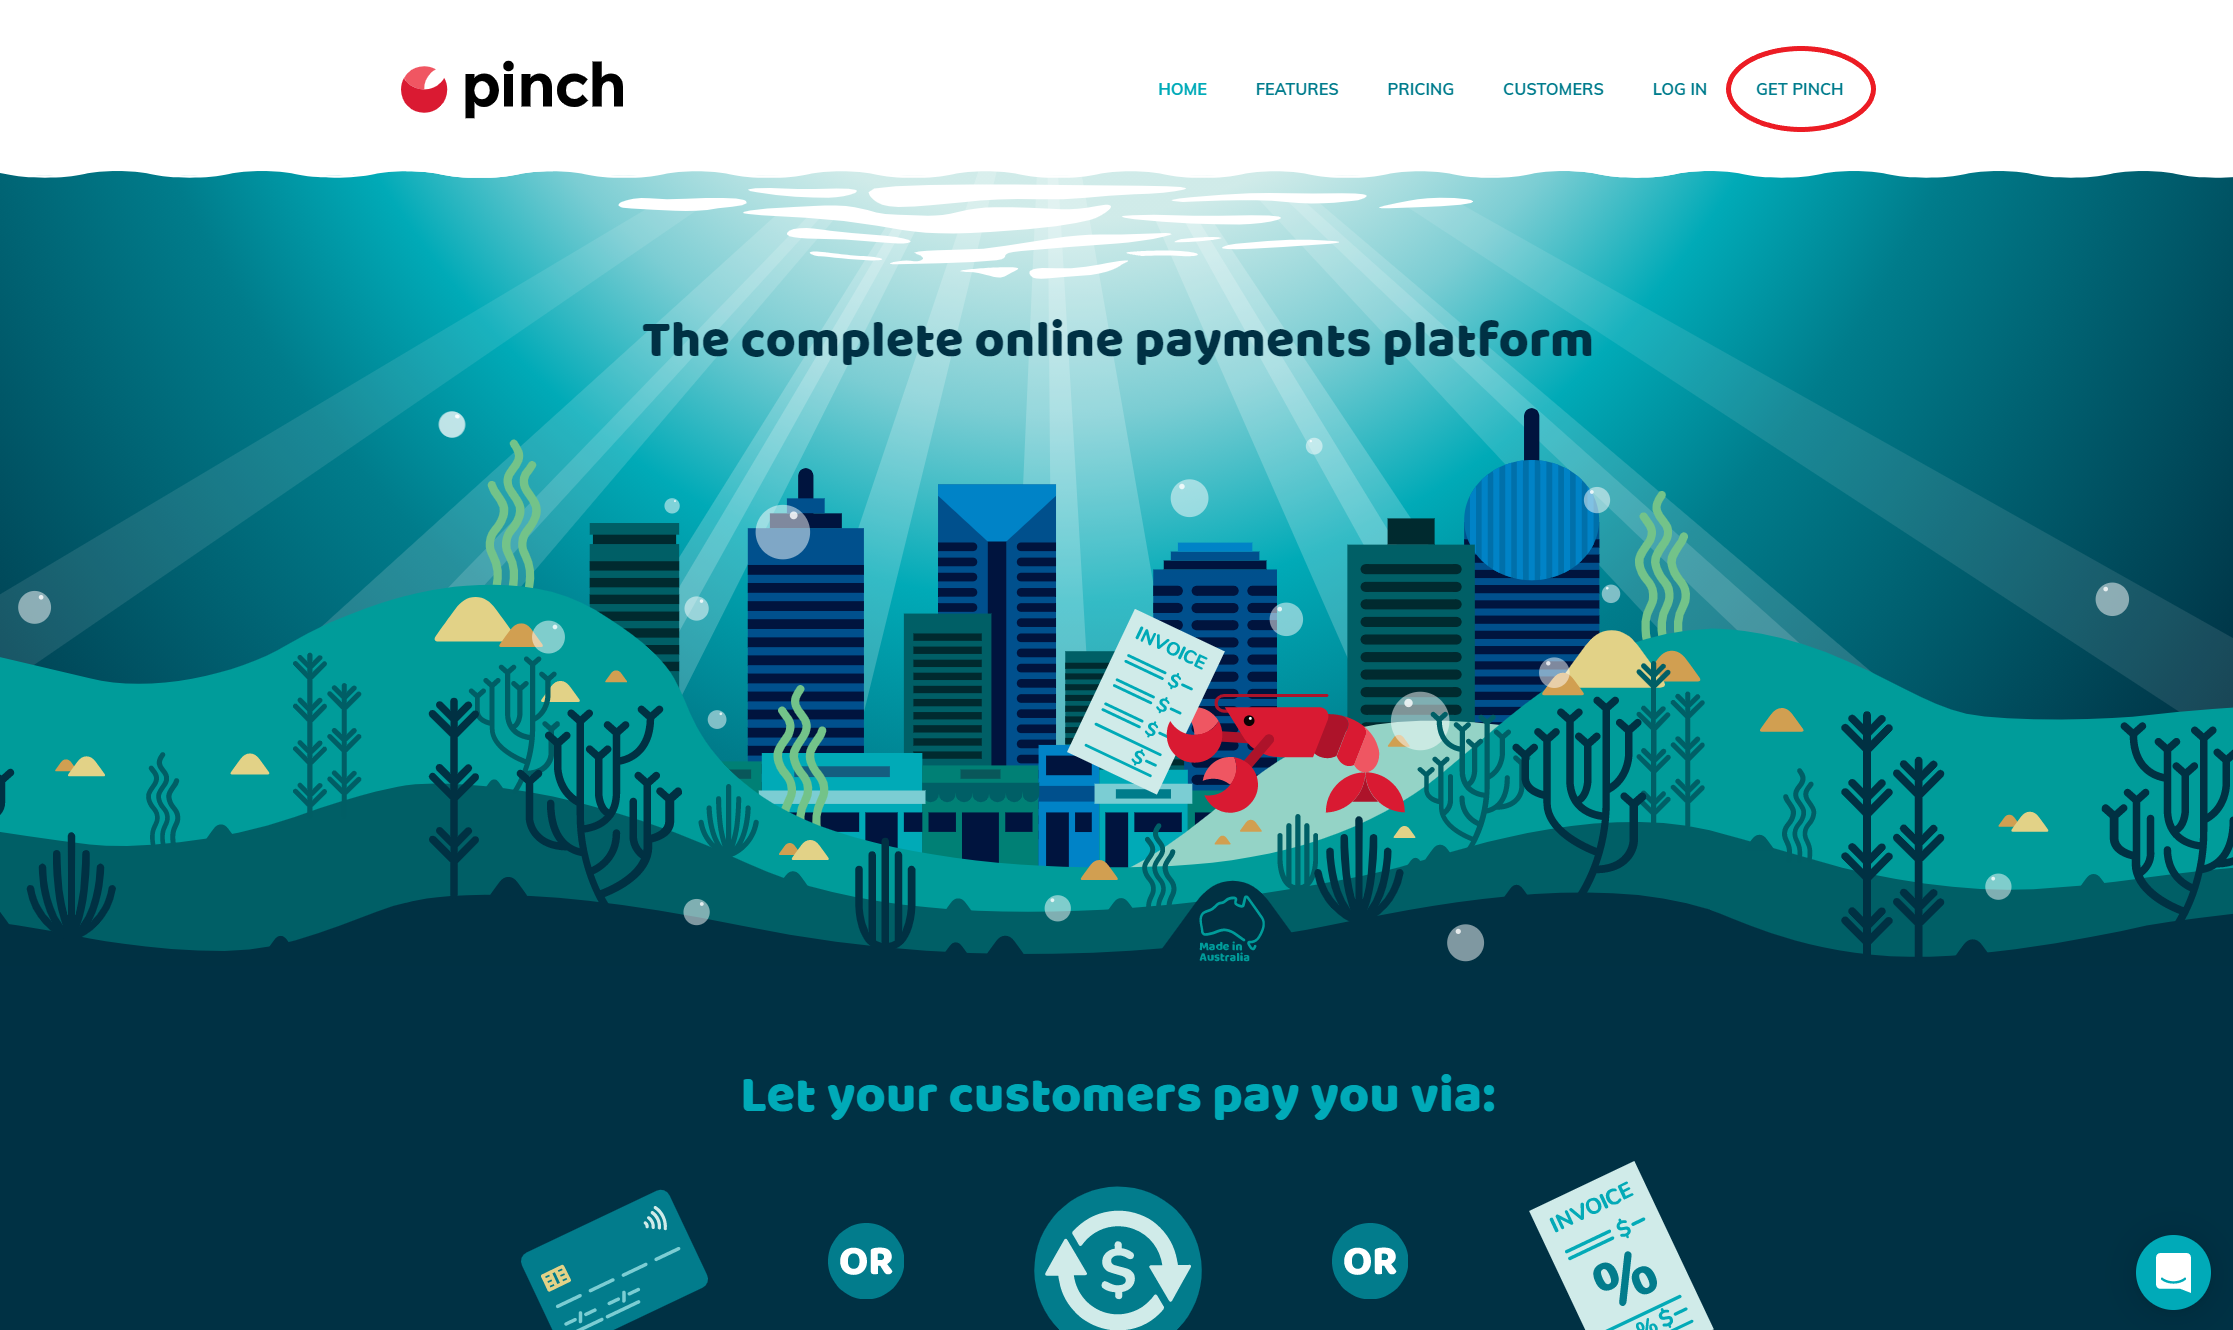 01._getpinch.com.au_Home_page.png